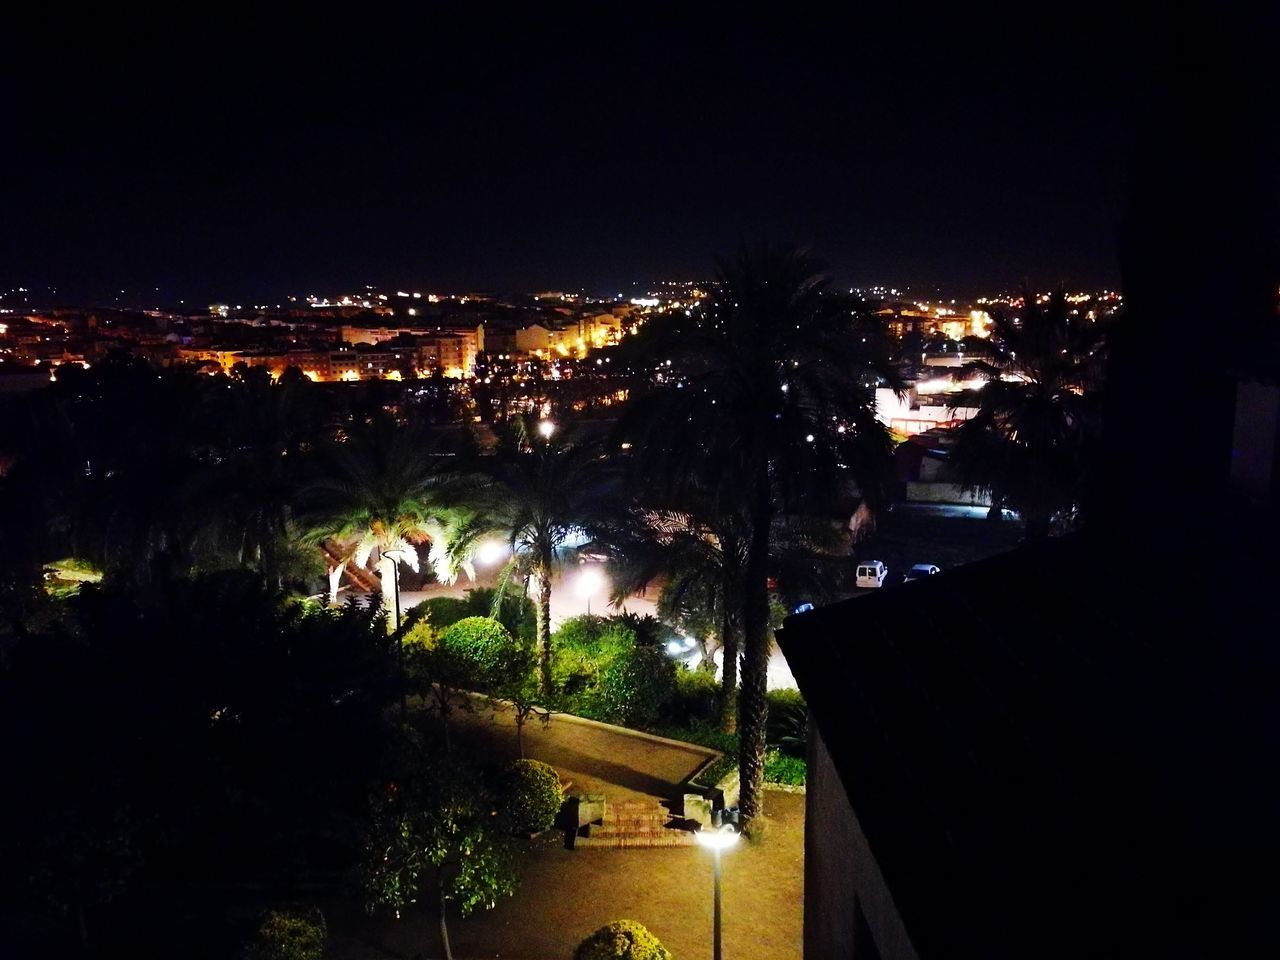 night, illuminated, tree, architecture, building exterior, built structure, town, no people, palm tree, outdoors, city, cityscape